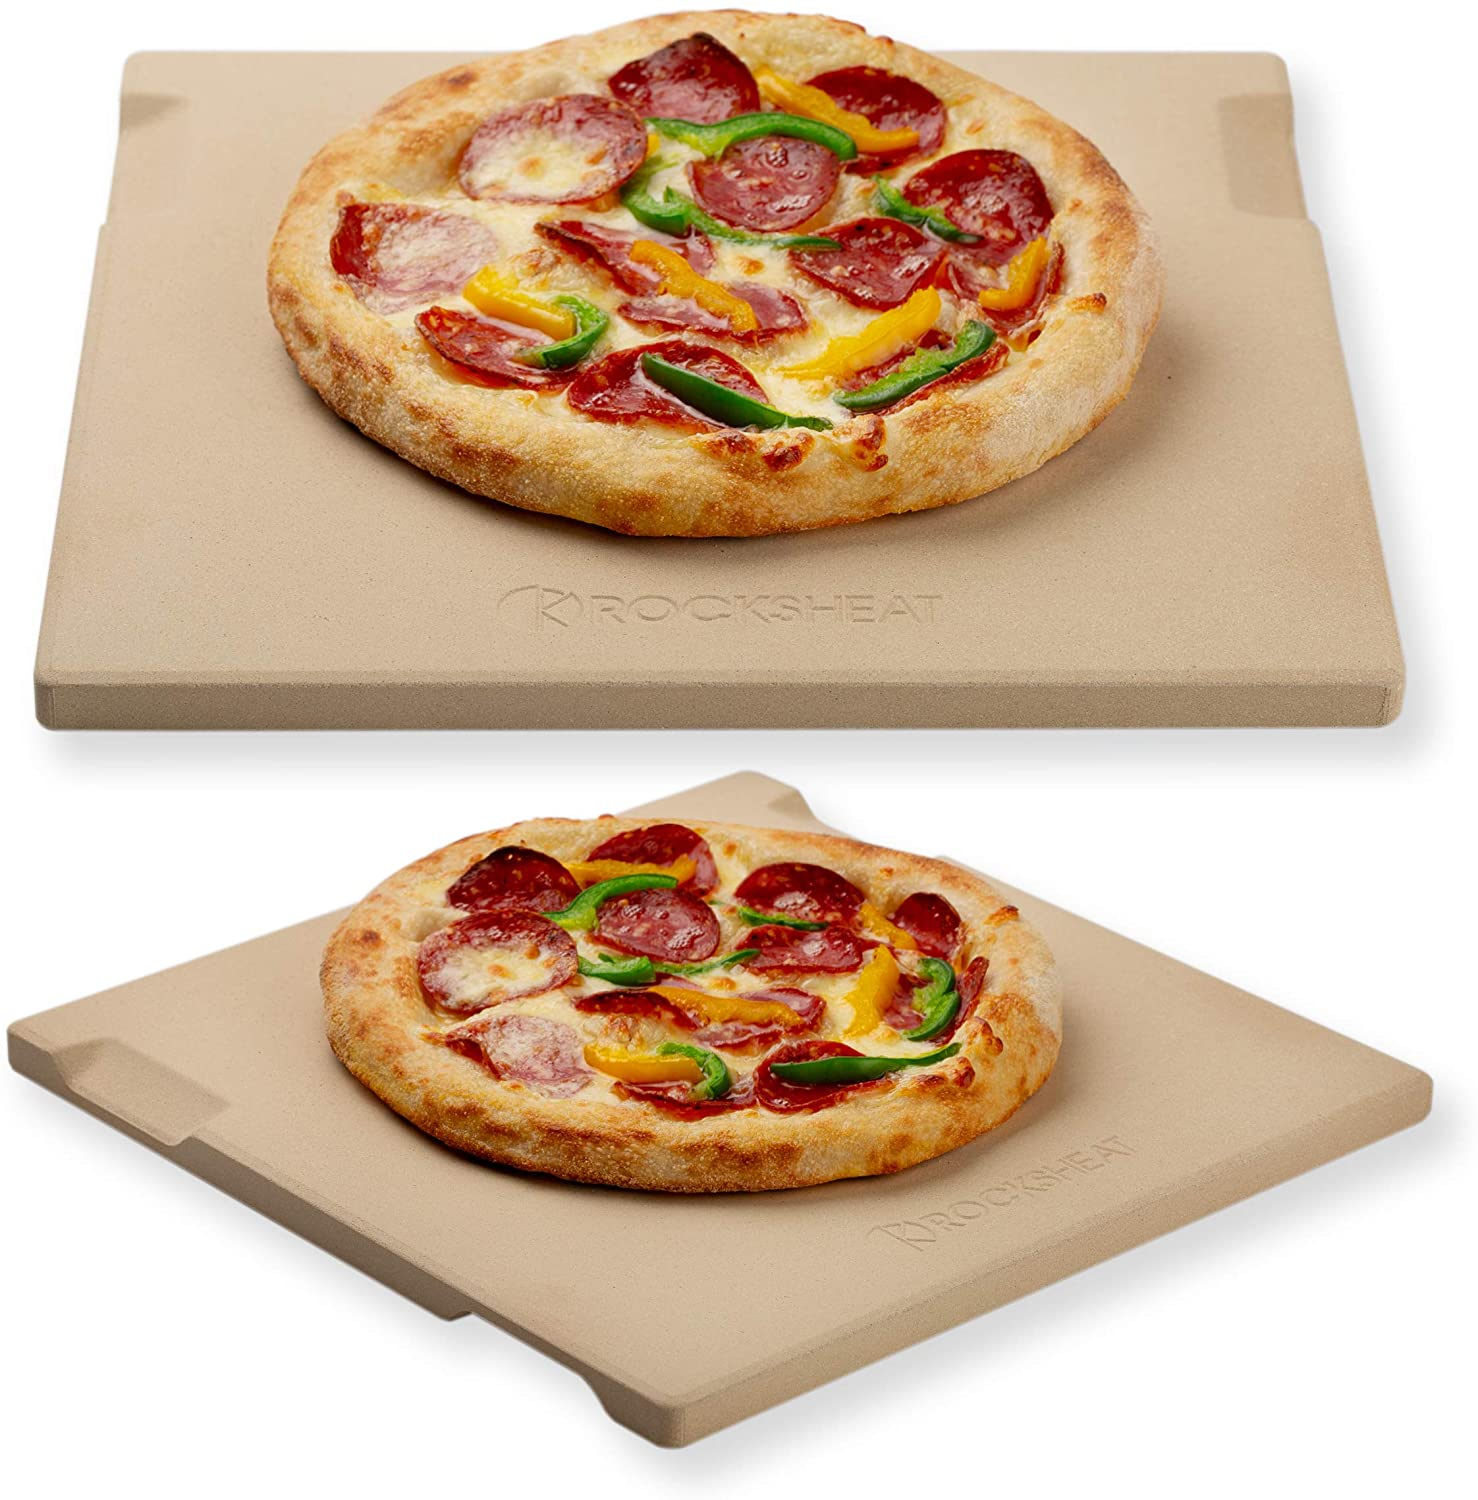 Pizza Stone Baking & Grilling Stone, Perfect for Oven, BBQ and Grill. Innovative Double - faced Built - in 4 Handles Design (12